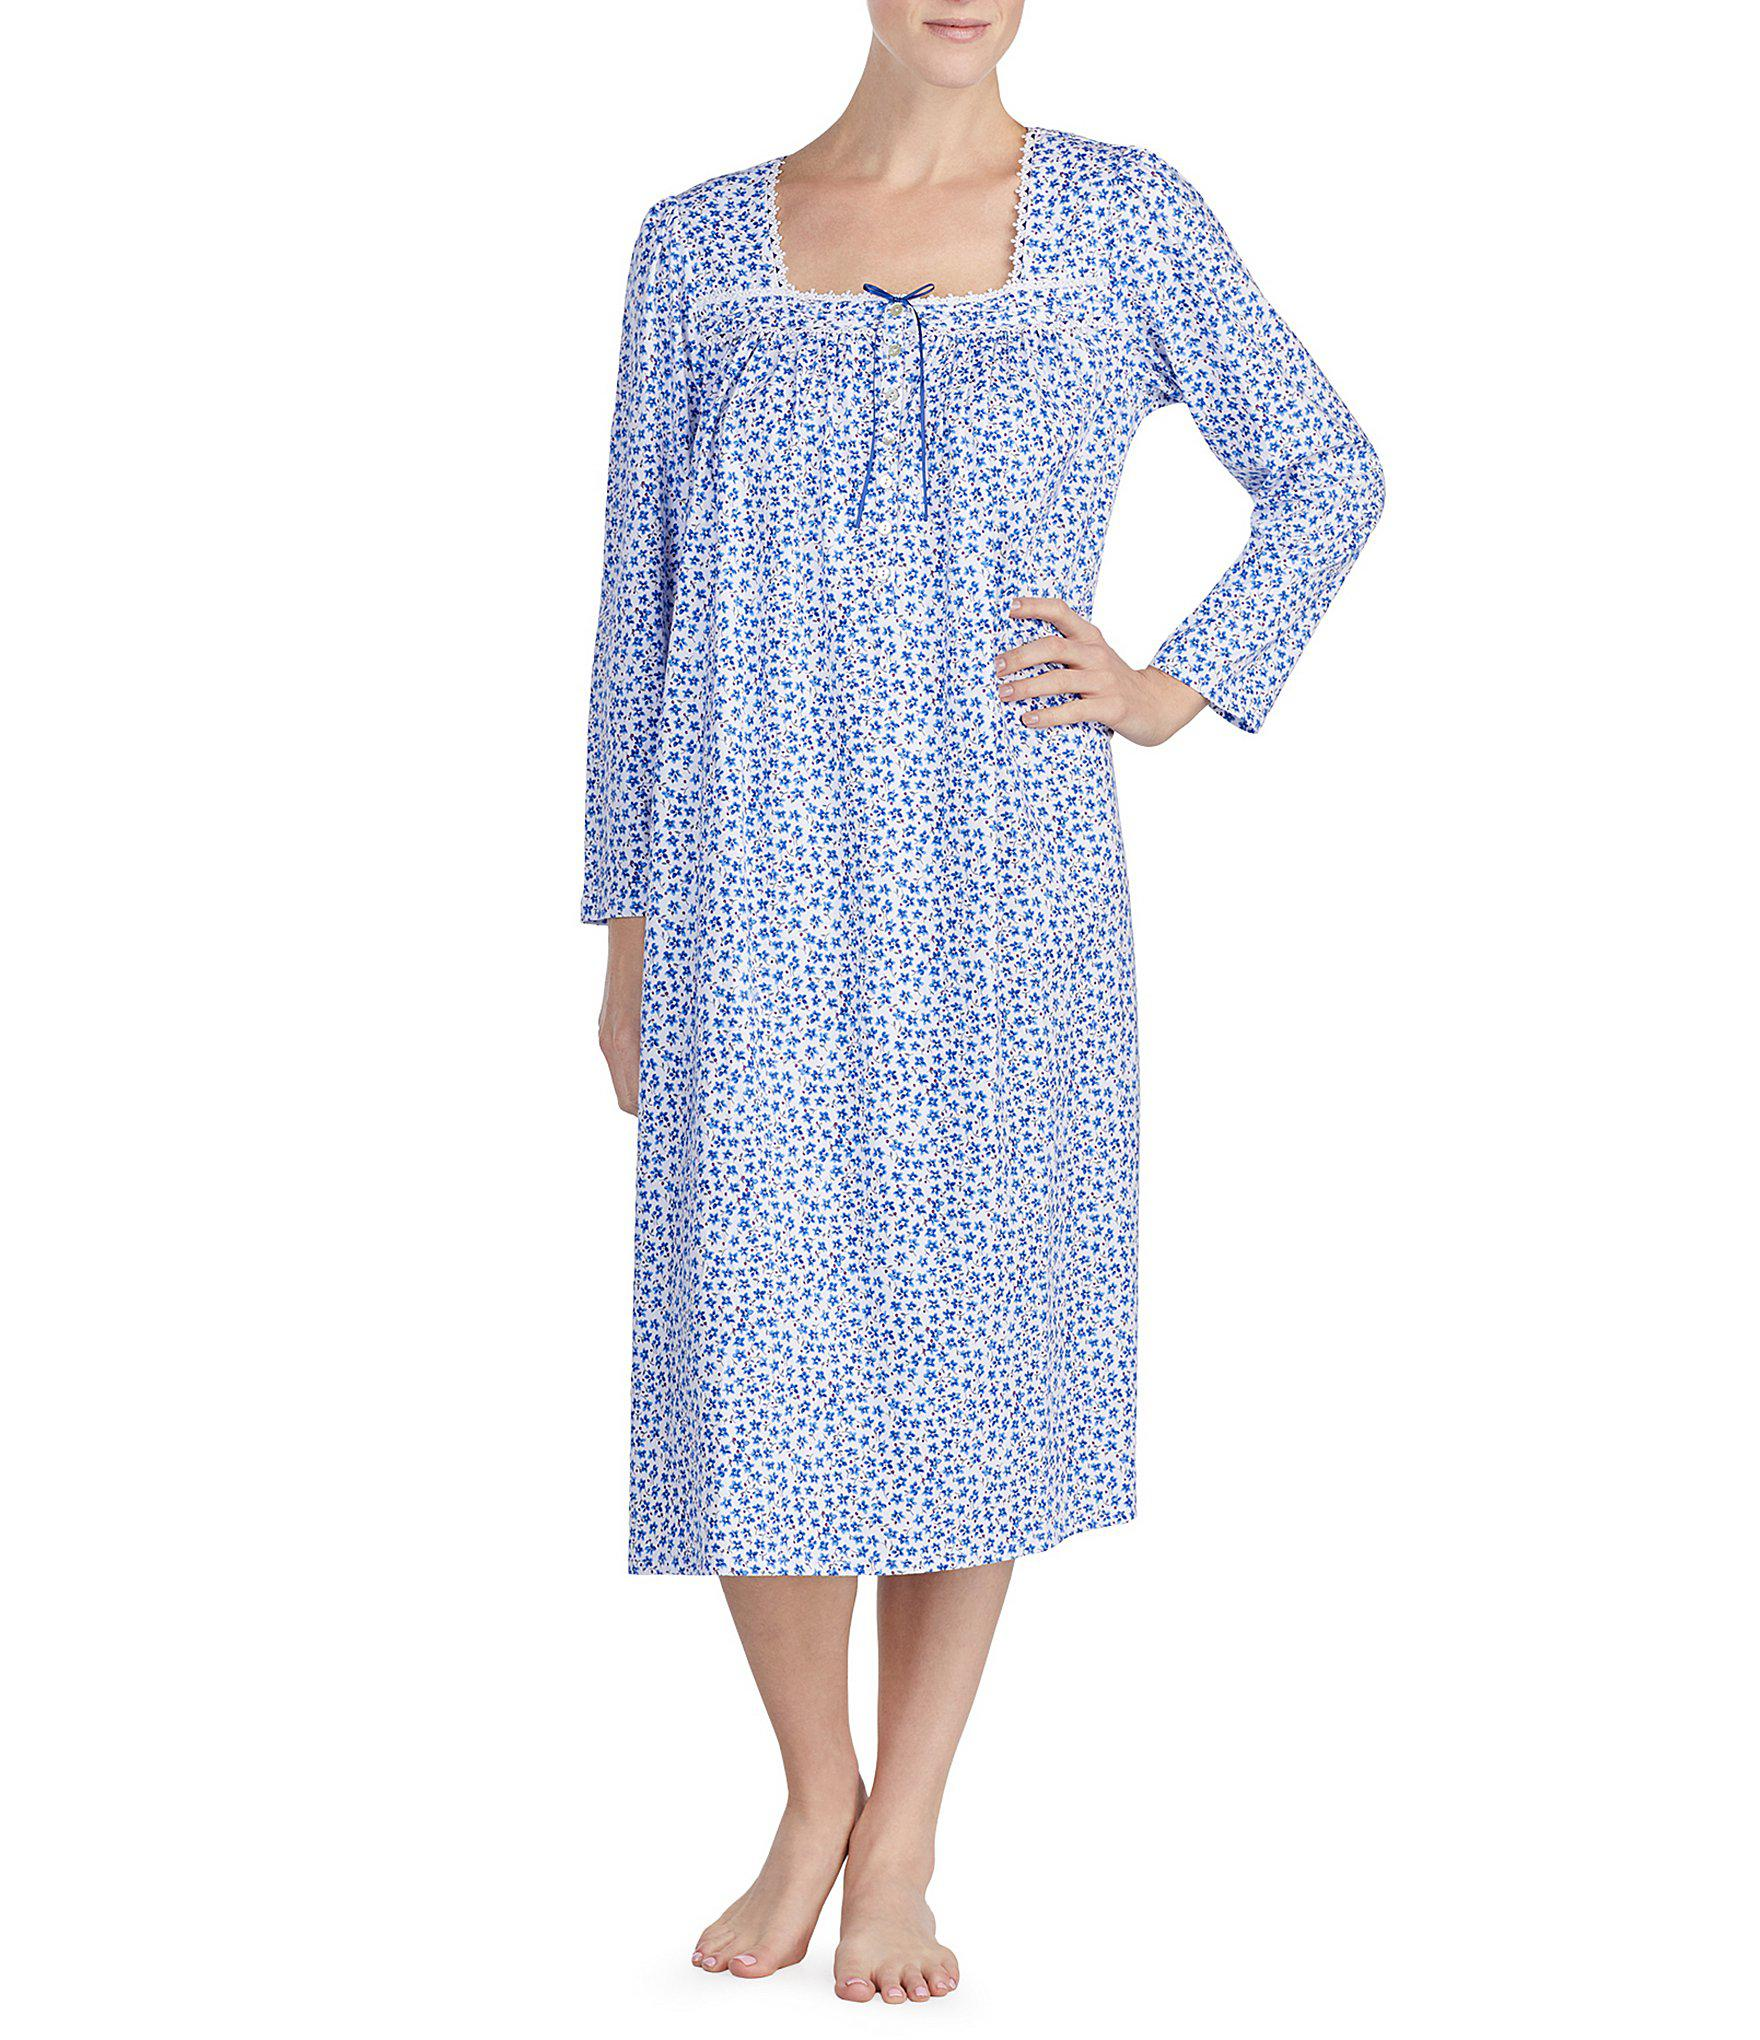 Lyst - Eileen West Printed Jersey Ballet Nightgown in Blue 8f2e1a614